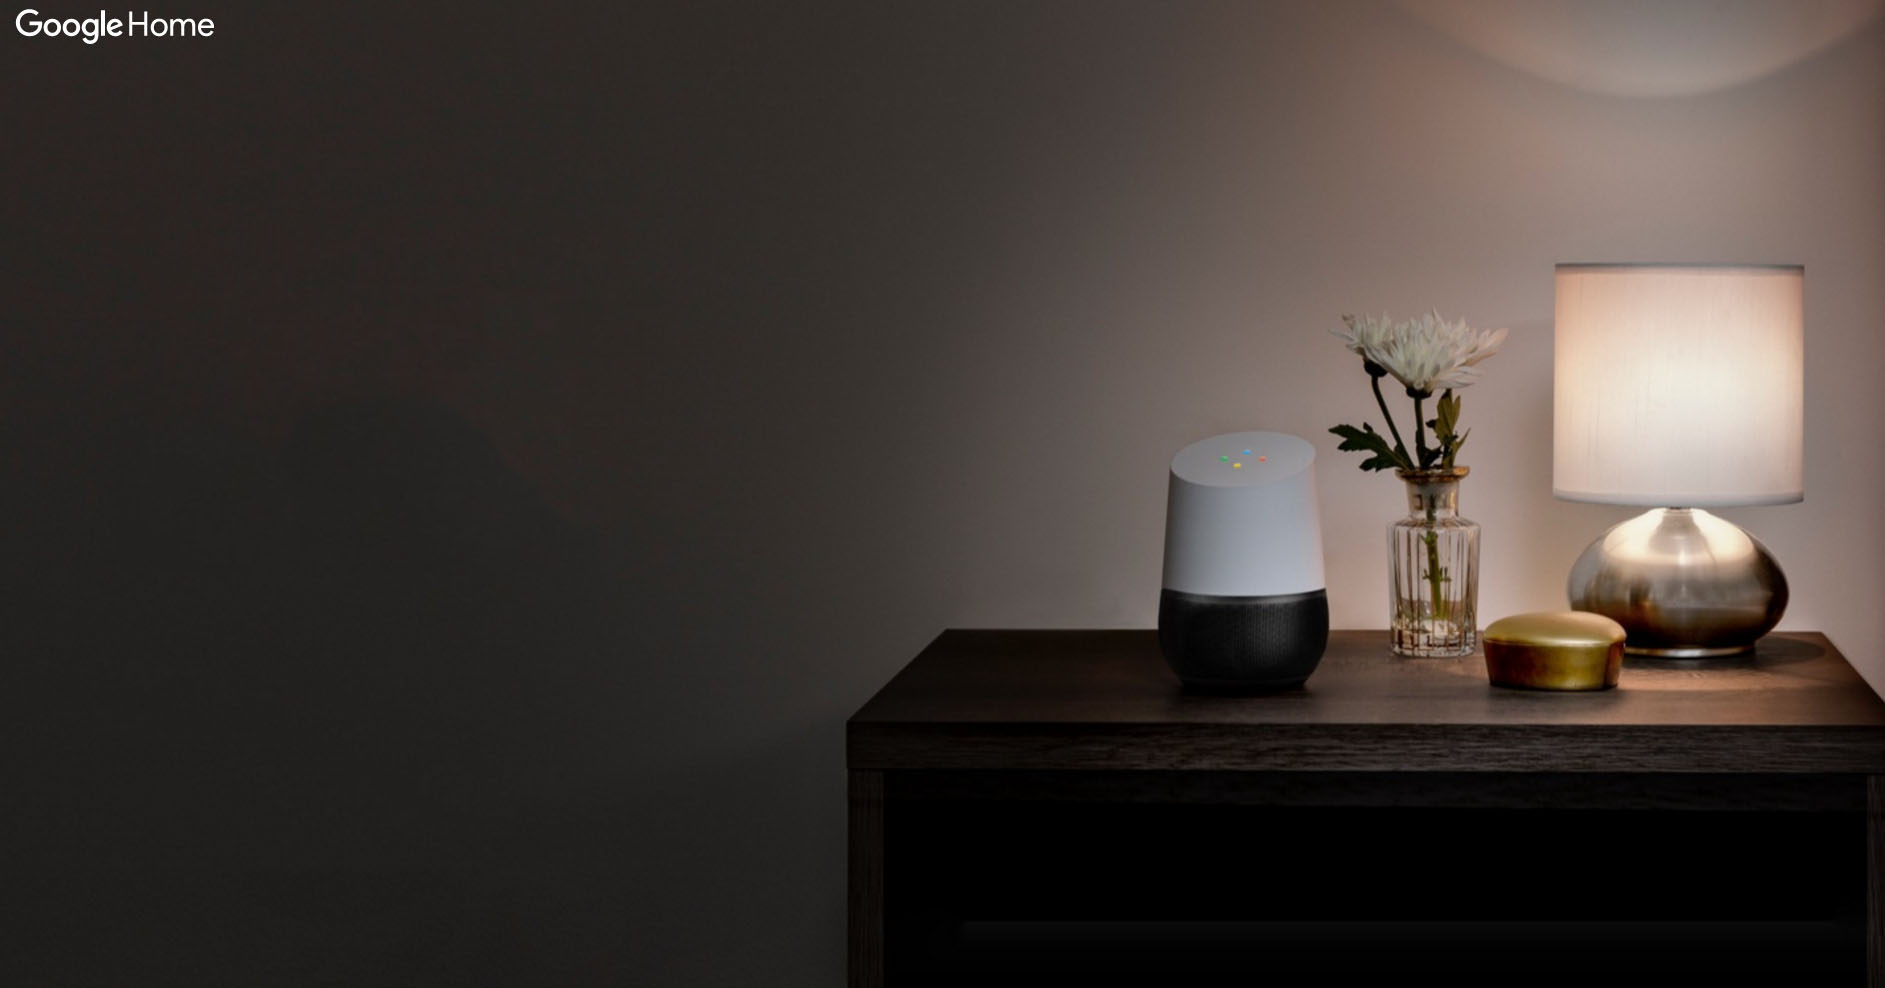 Google Home Is The Latest Competitor To Amazon Echo – Here's What It's Capable Of Doing